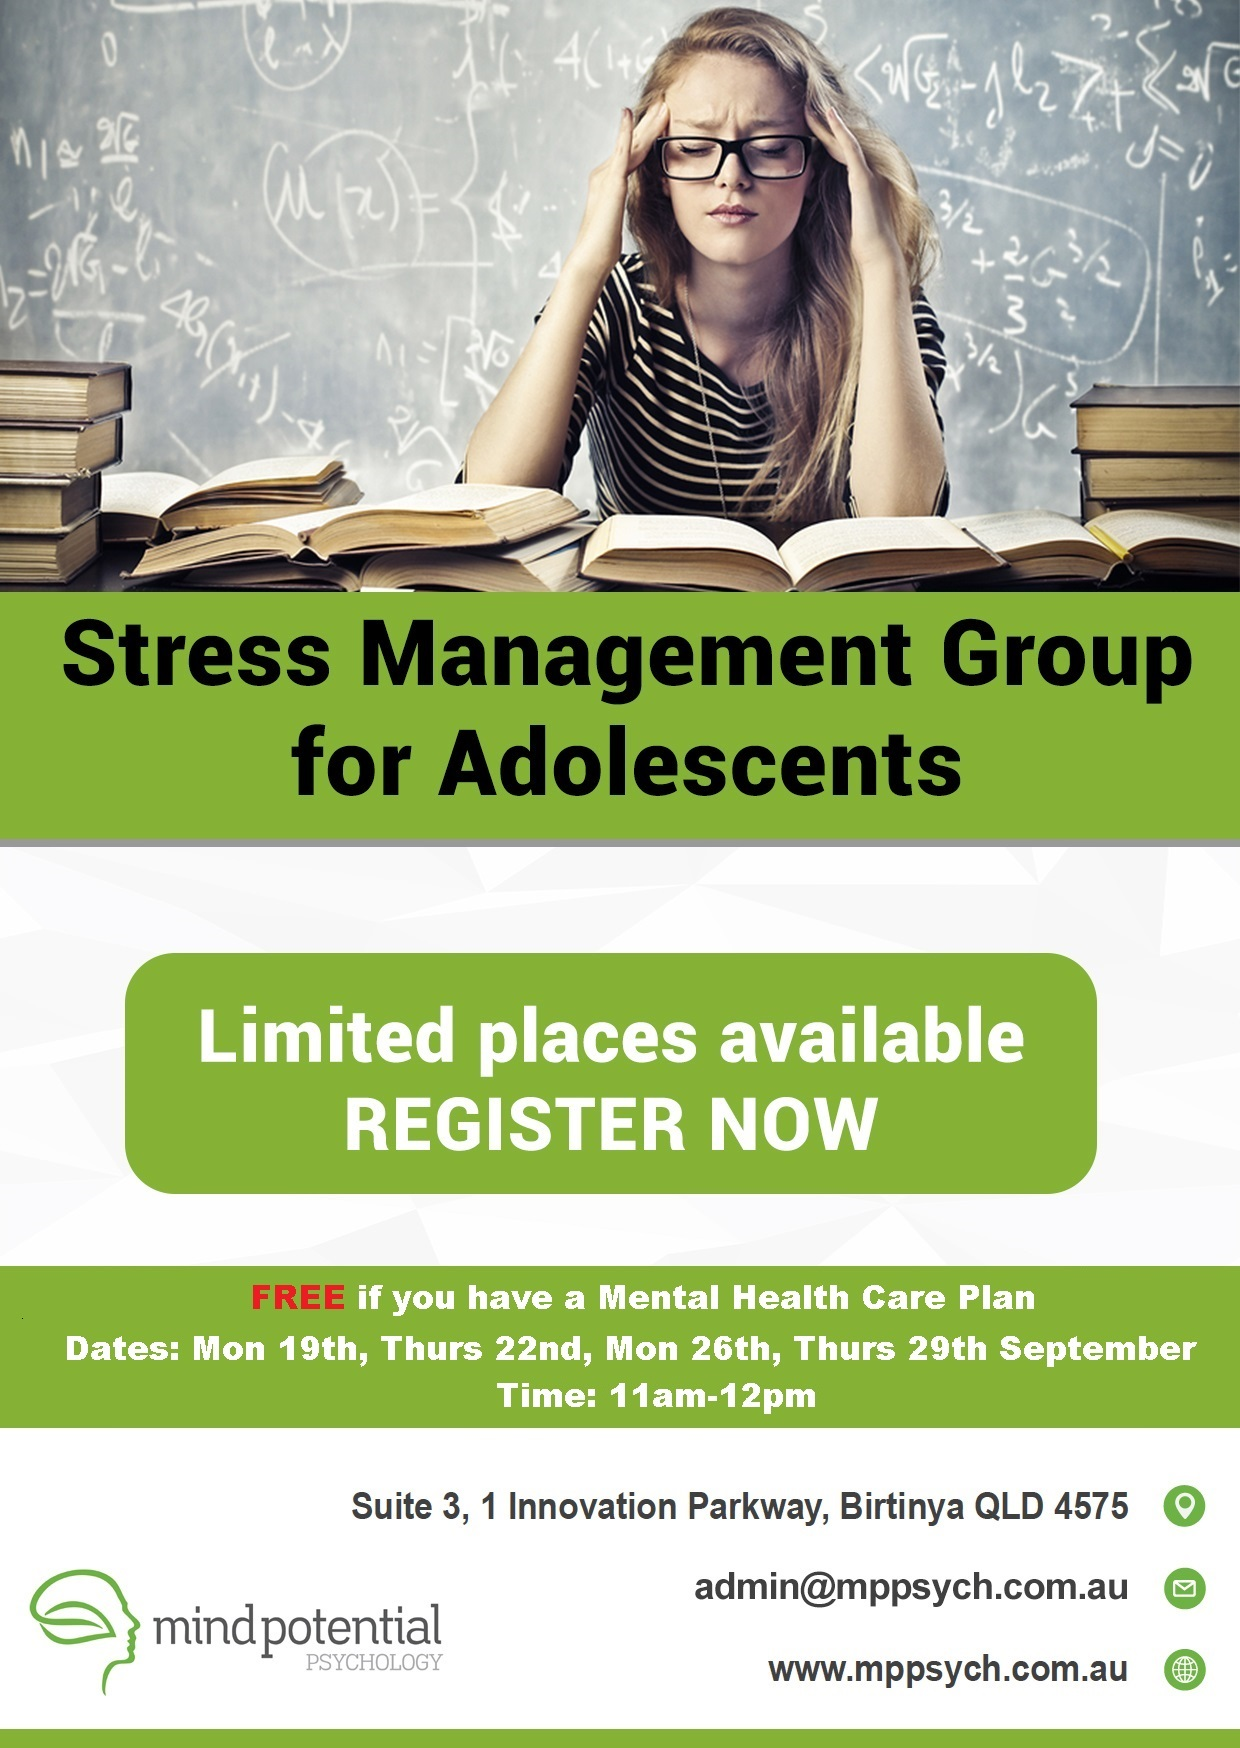 Stress-Management-Group-for-Adolescents-FINAL